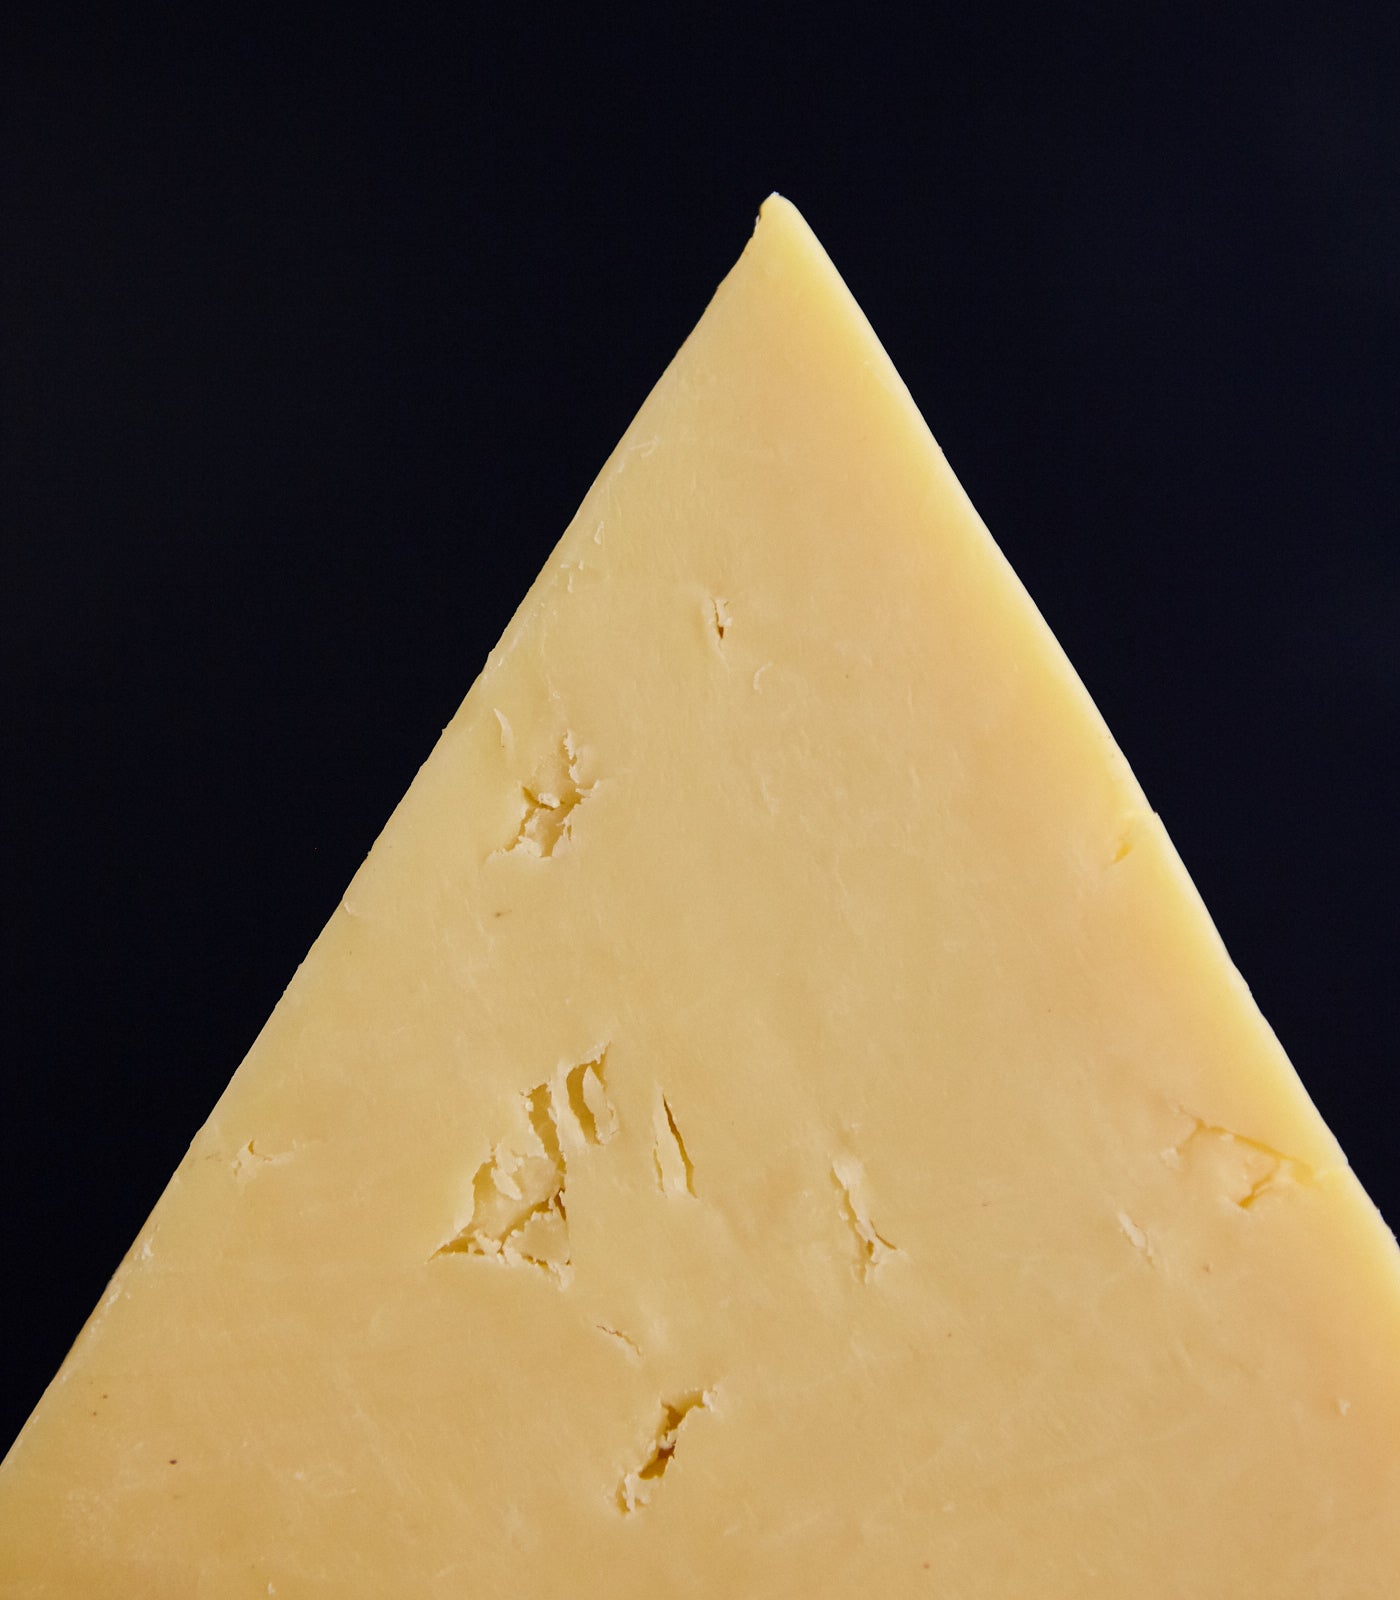 Close up of a cut piece of Lincolnshire Poacher Cheddar cheese, showing the smooth-textured, Comté-like paste